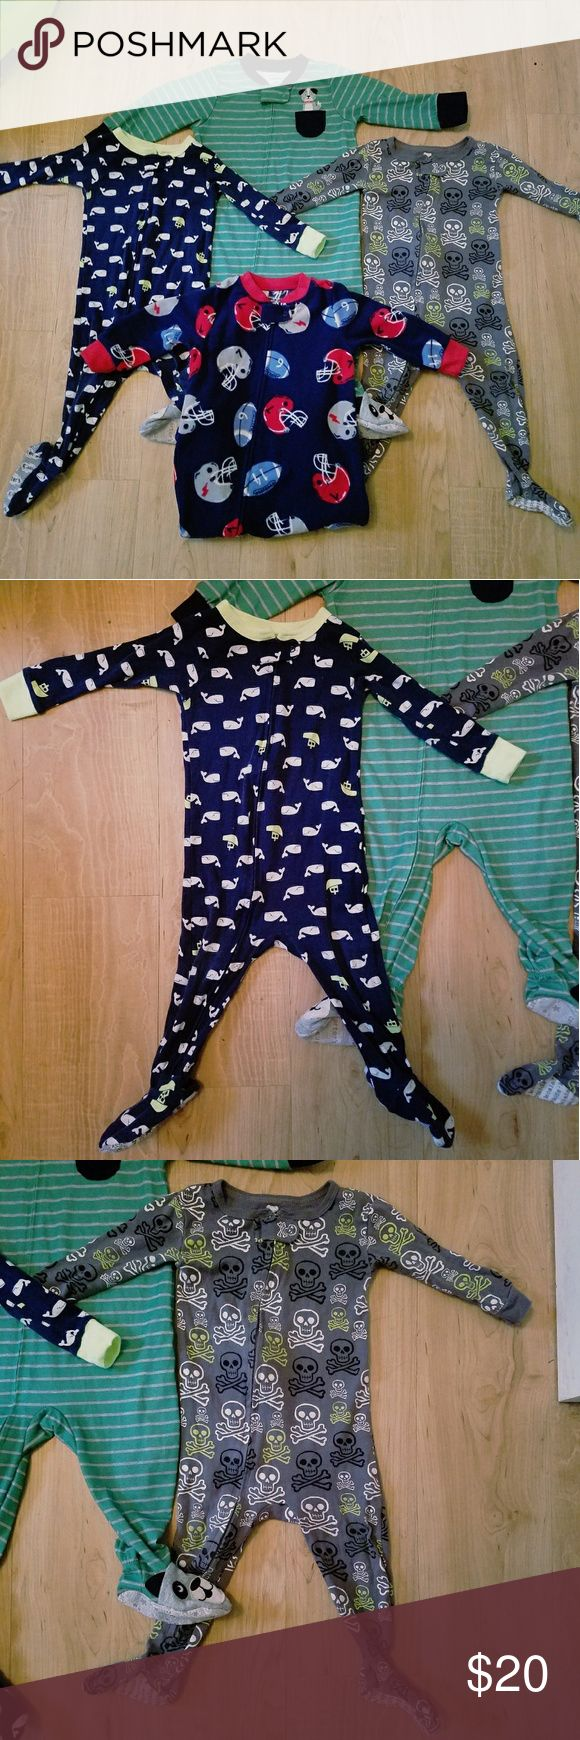 😴Carter's & Koala Baby 12months Boy's PJ Bundle Carter's & Koala Baby 12month boy's PJ Bundle. Includes 4 sets of PJ onesies. Koala Baby skull onesie & Carter's Whale onesie are supposed to be a snug fit. All fit 12 months. Washed in  baby detergent, smoke free home, great condition!! Open to reasonable offers and custom bundles, just ask!! 😊😊 Carter's Pajamas Pajama Sets